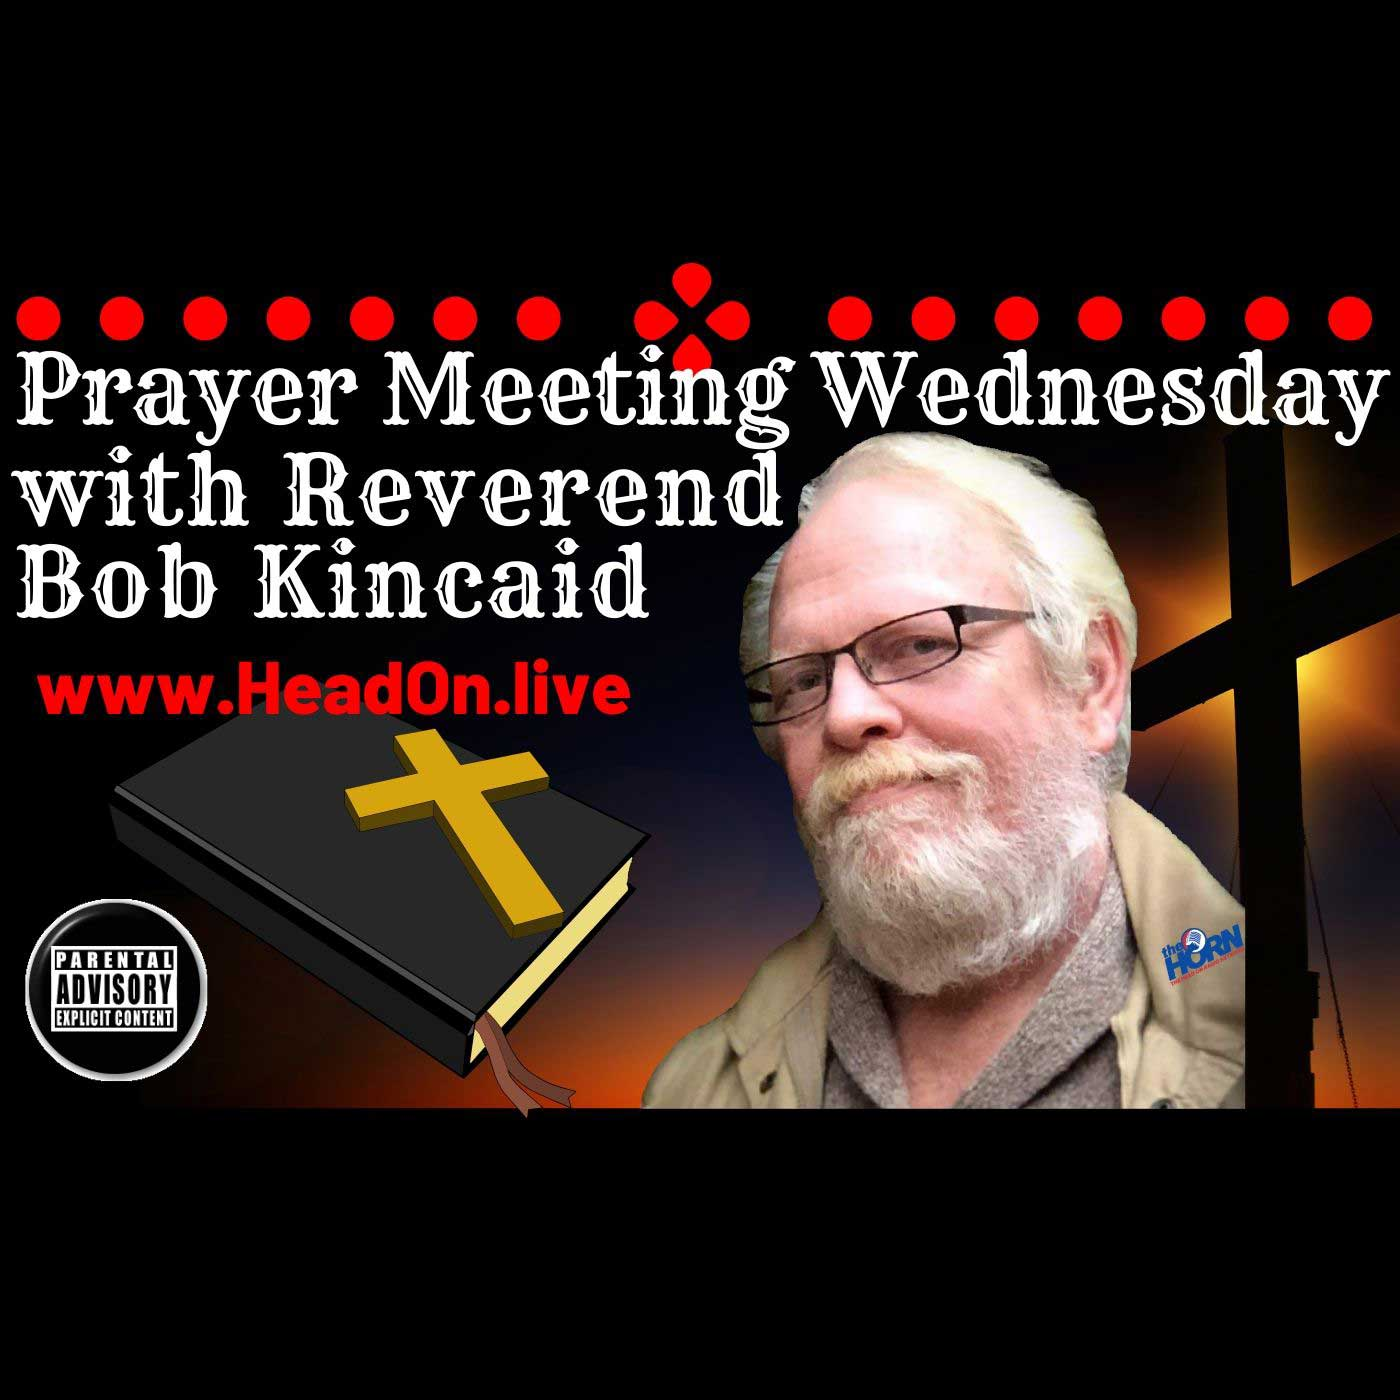 Prayer Meetin' Wednesday, Head-ON With Bob Kincaid, 11 December 2019